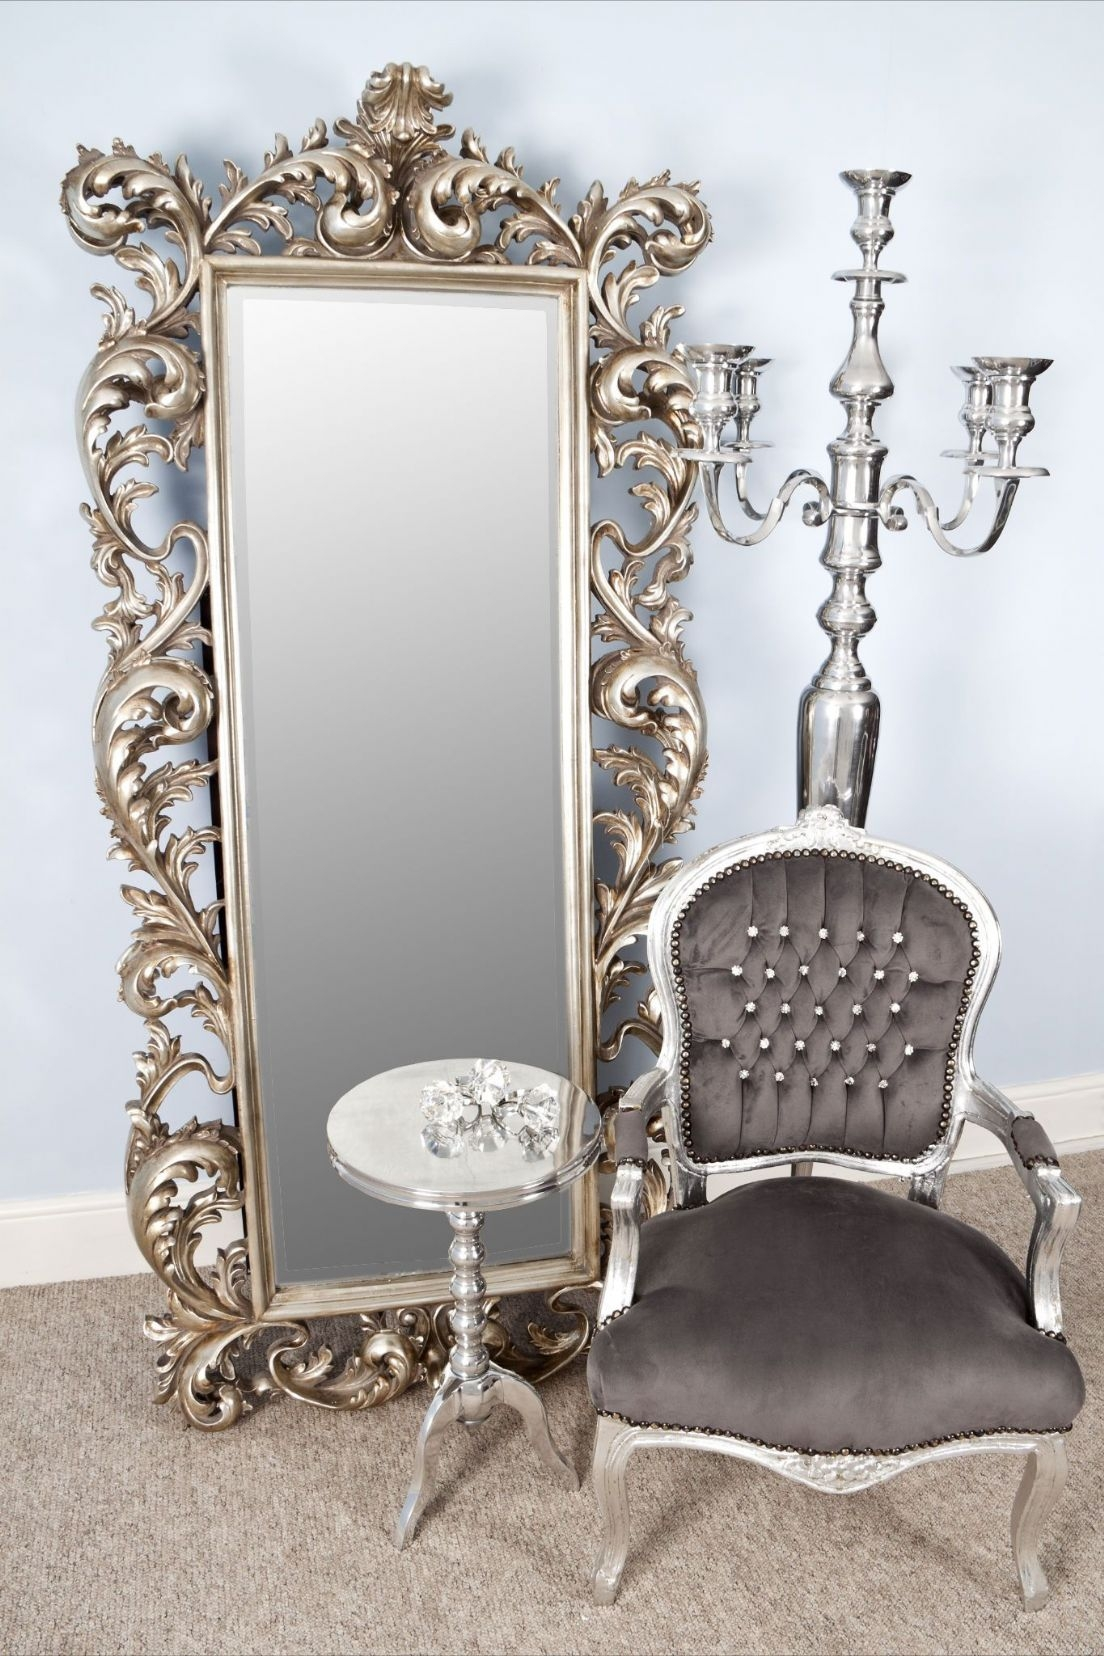 Bedroom Appealing Oversized Mirrors For Home Decoration Ideas Regarding Large Vintage Mirrors For Sale (Image 3 of 15)